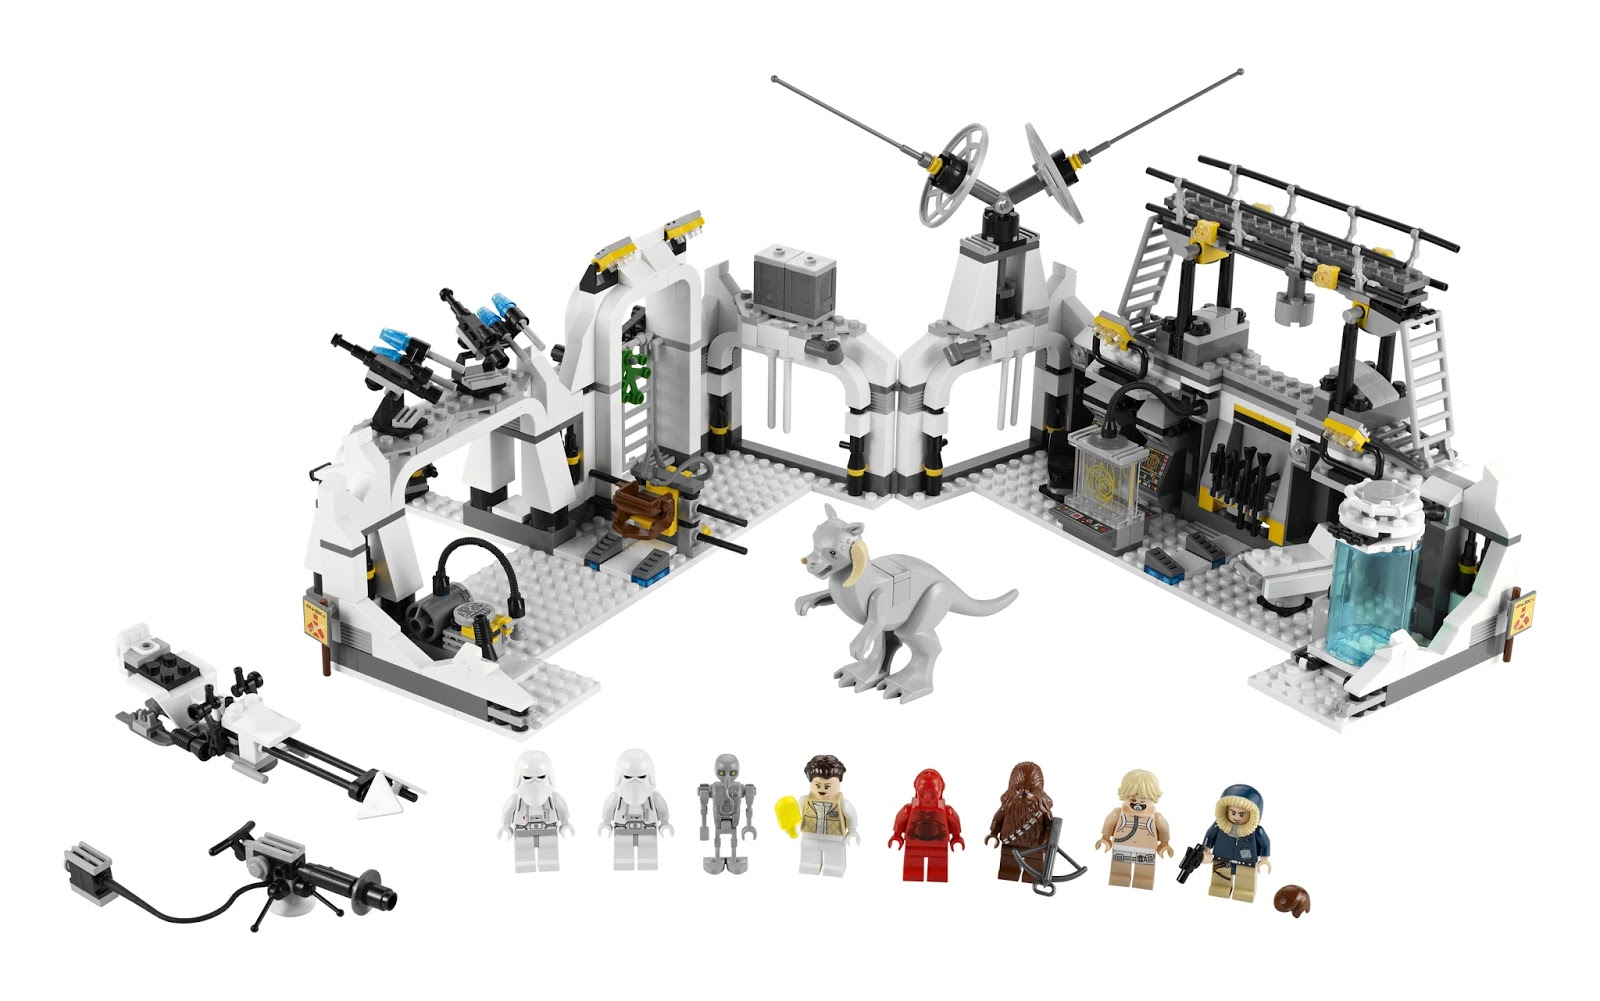 all about bricks quick reaction lego star wars assault on hoth 75098. Black Bedroom Furniture Sets. Home Design Ideas